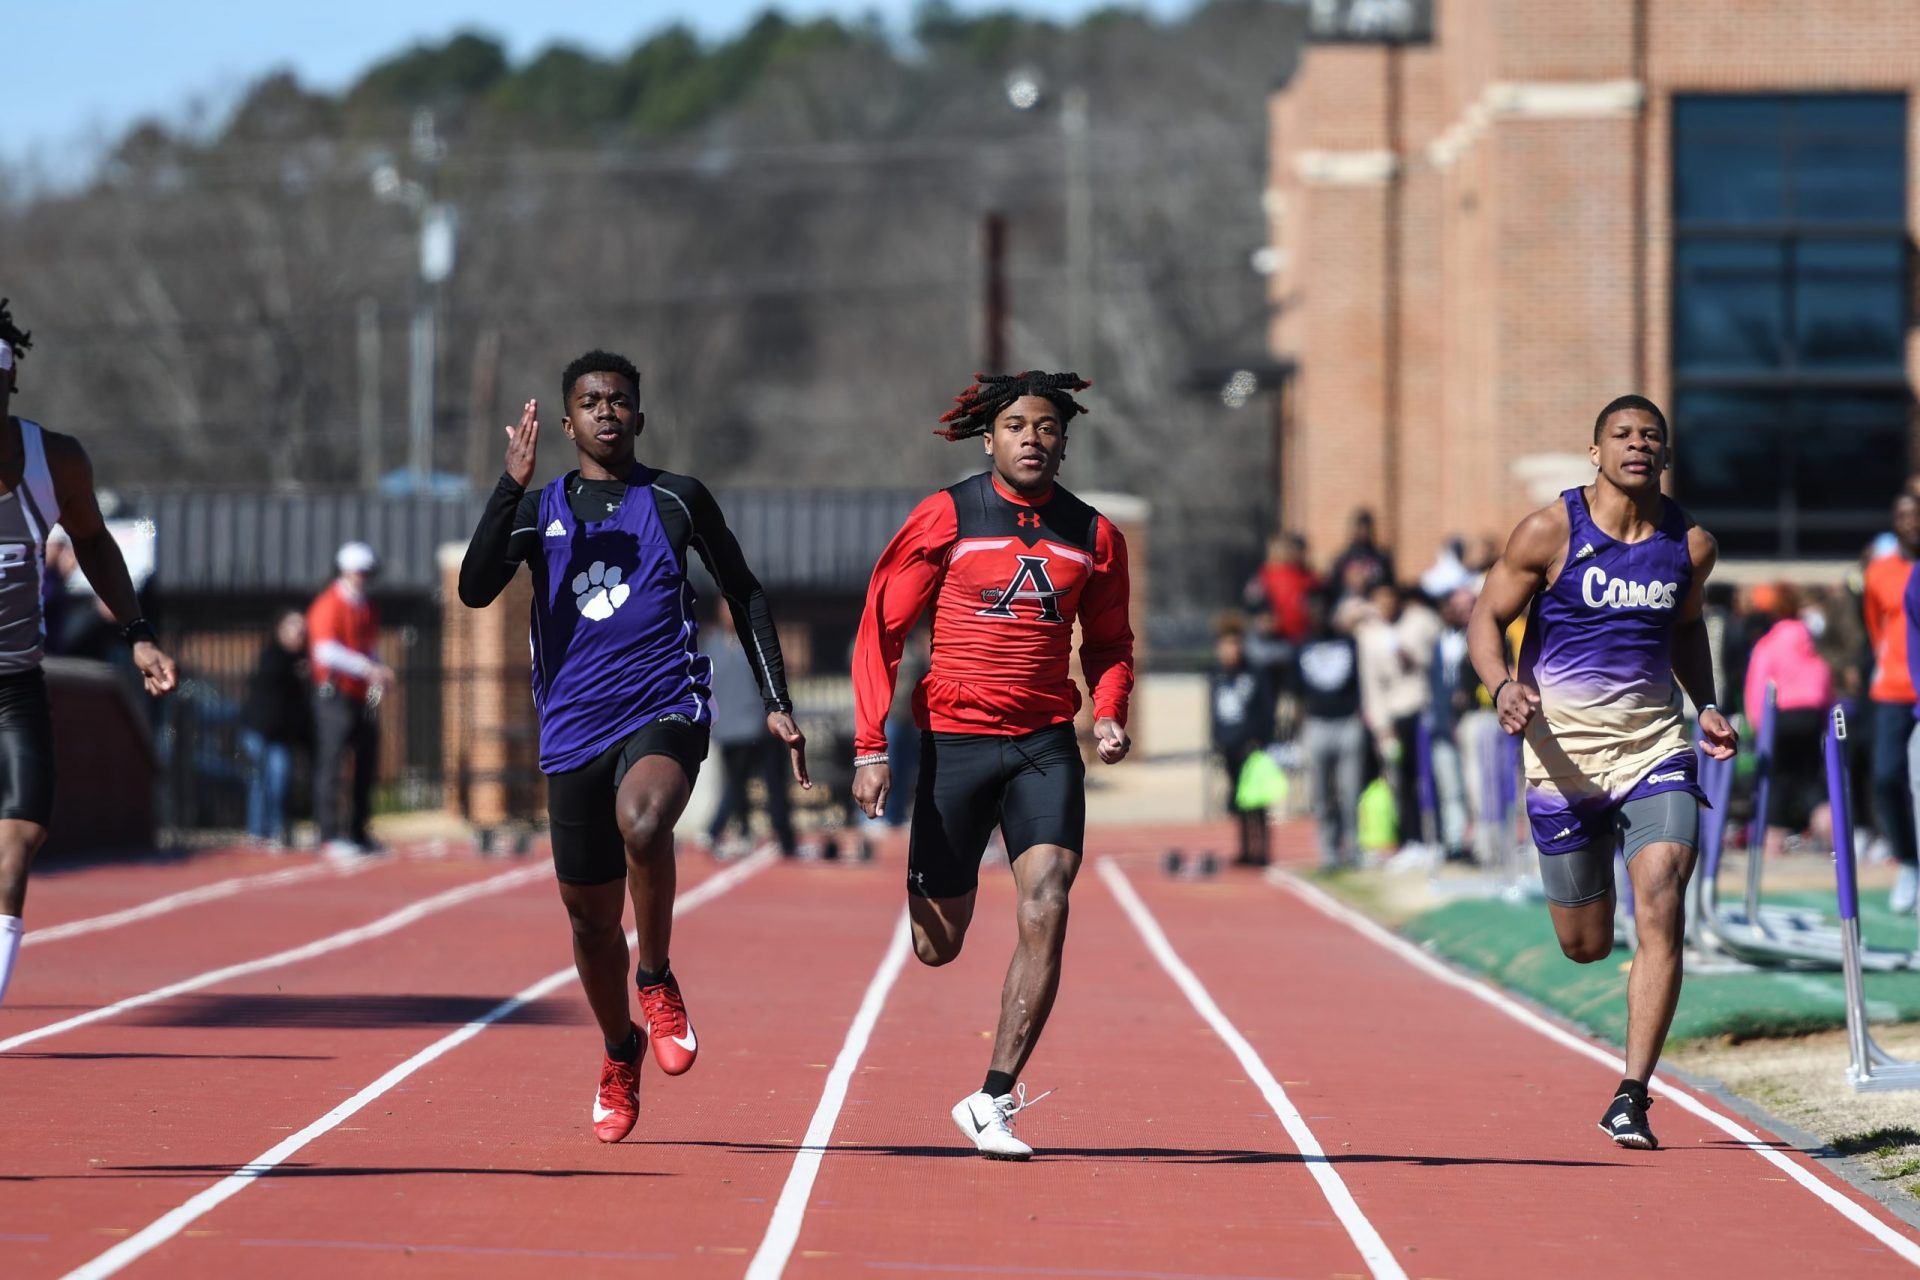 Allatoona Varsity Track and Field at Cartersville HS Purple Hurricane Invitational on February 29, 2020 - Cartersville, GA. Credit - Chrystal Moore